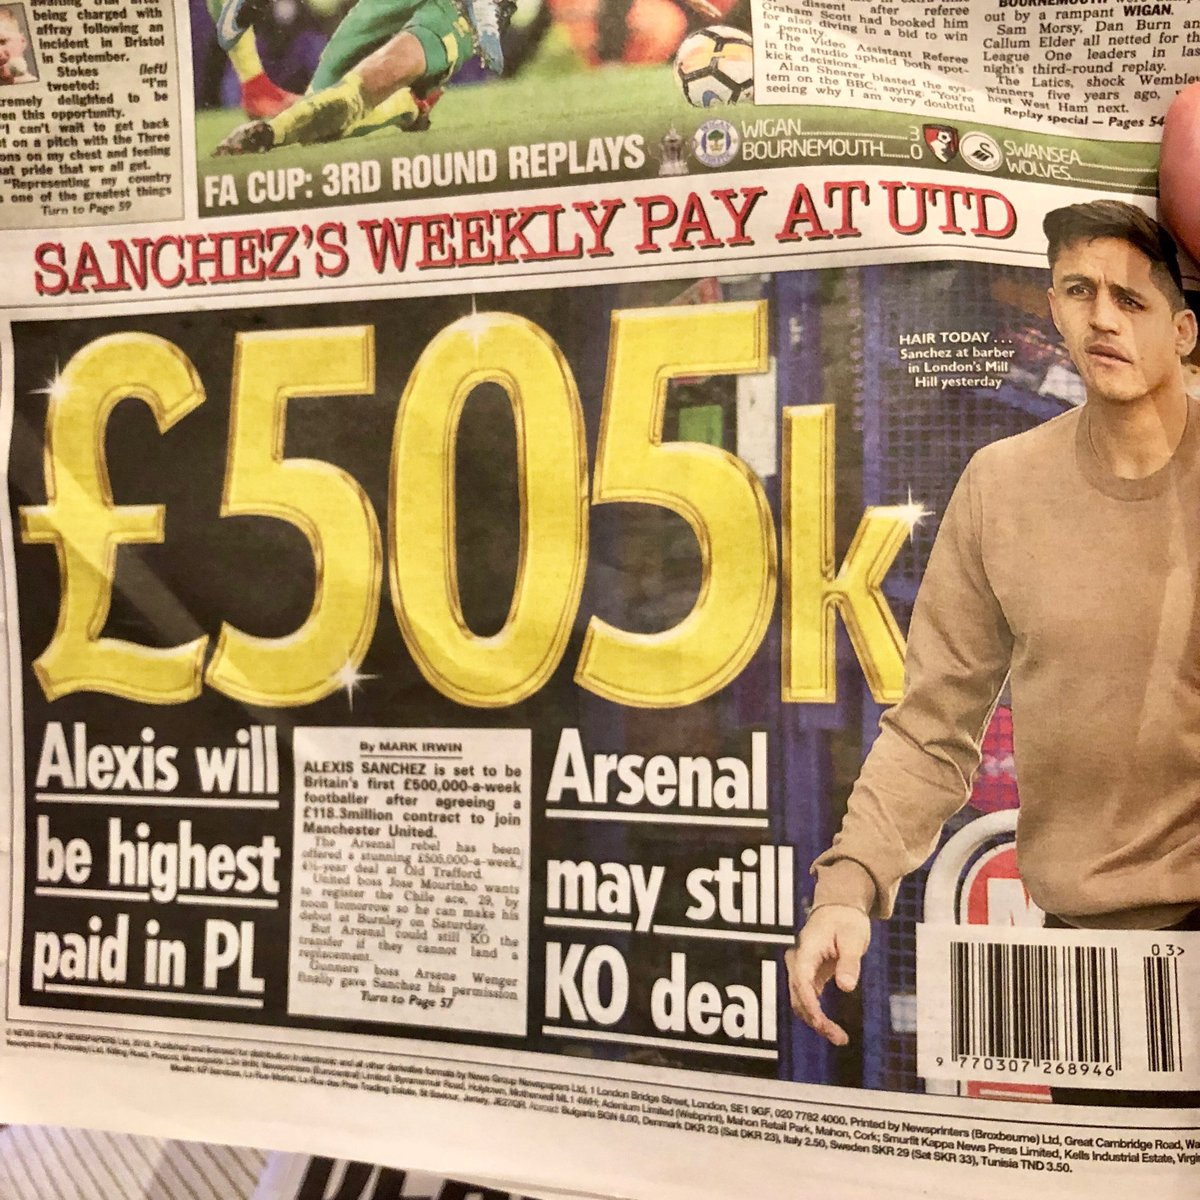 😂😂😂 If Sanchez is worth that, I'm a rhinoceros.